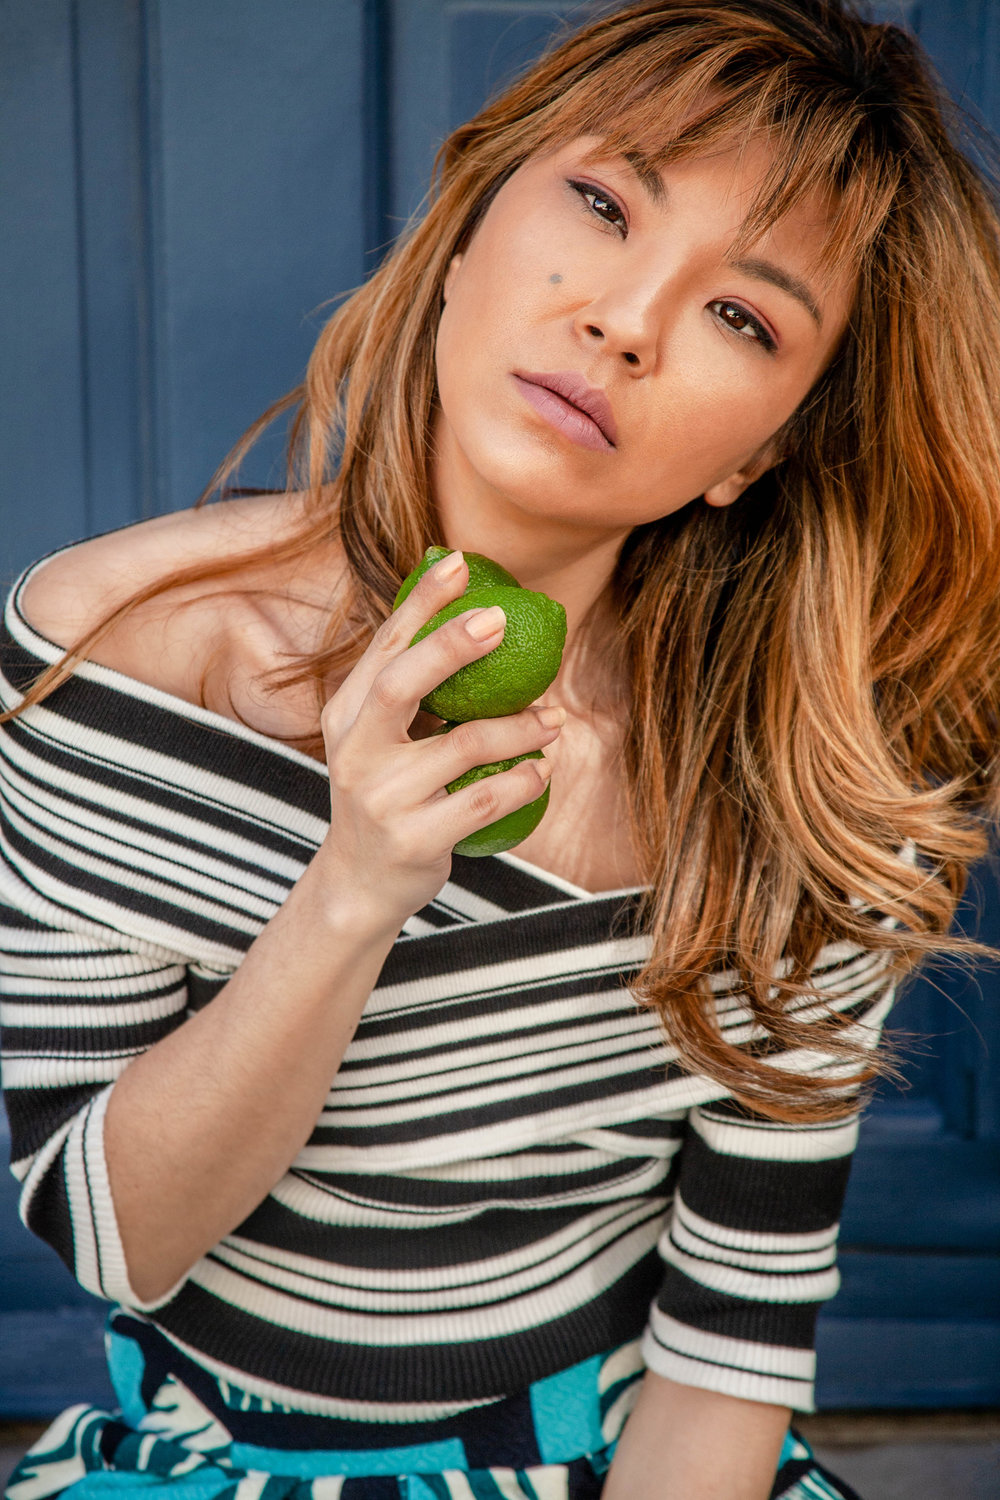 Girl with limes